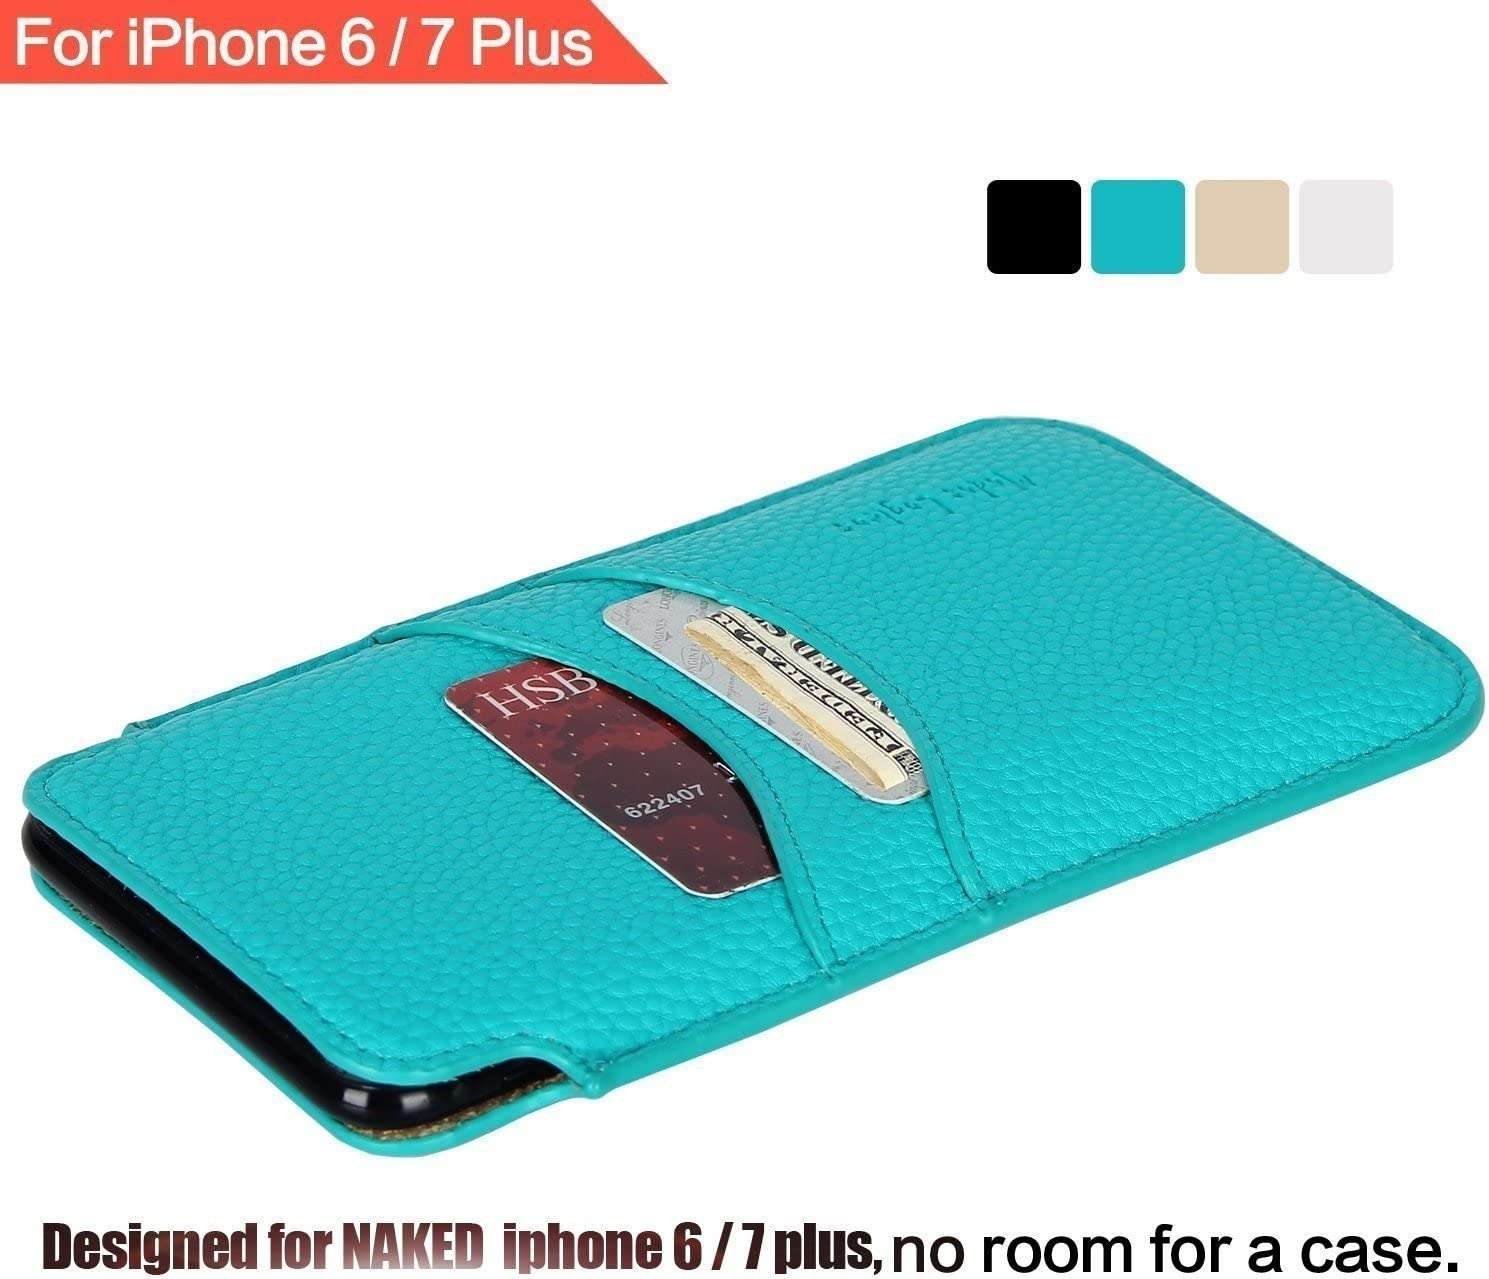 """Apple iPhone 8 Plus/iPhone 7 Plus/iPhone 6 Plus/iPhone 6S Plus 5.5"""" Sleeve , 2 Card Slots , Elastic Pull Strap , PU Leather Protective Sleeve Pouch Cover , Professional Executive Case Design - Teal"""